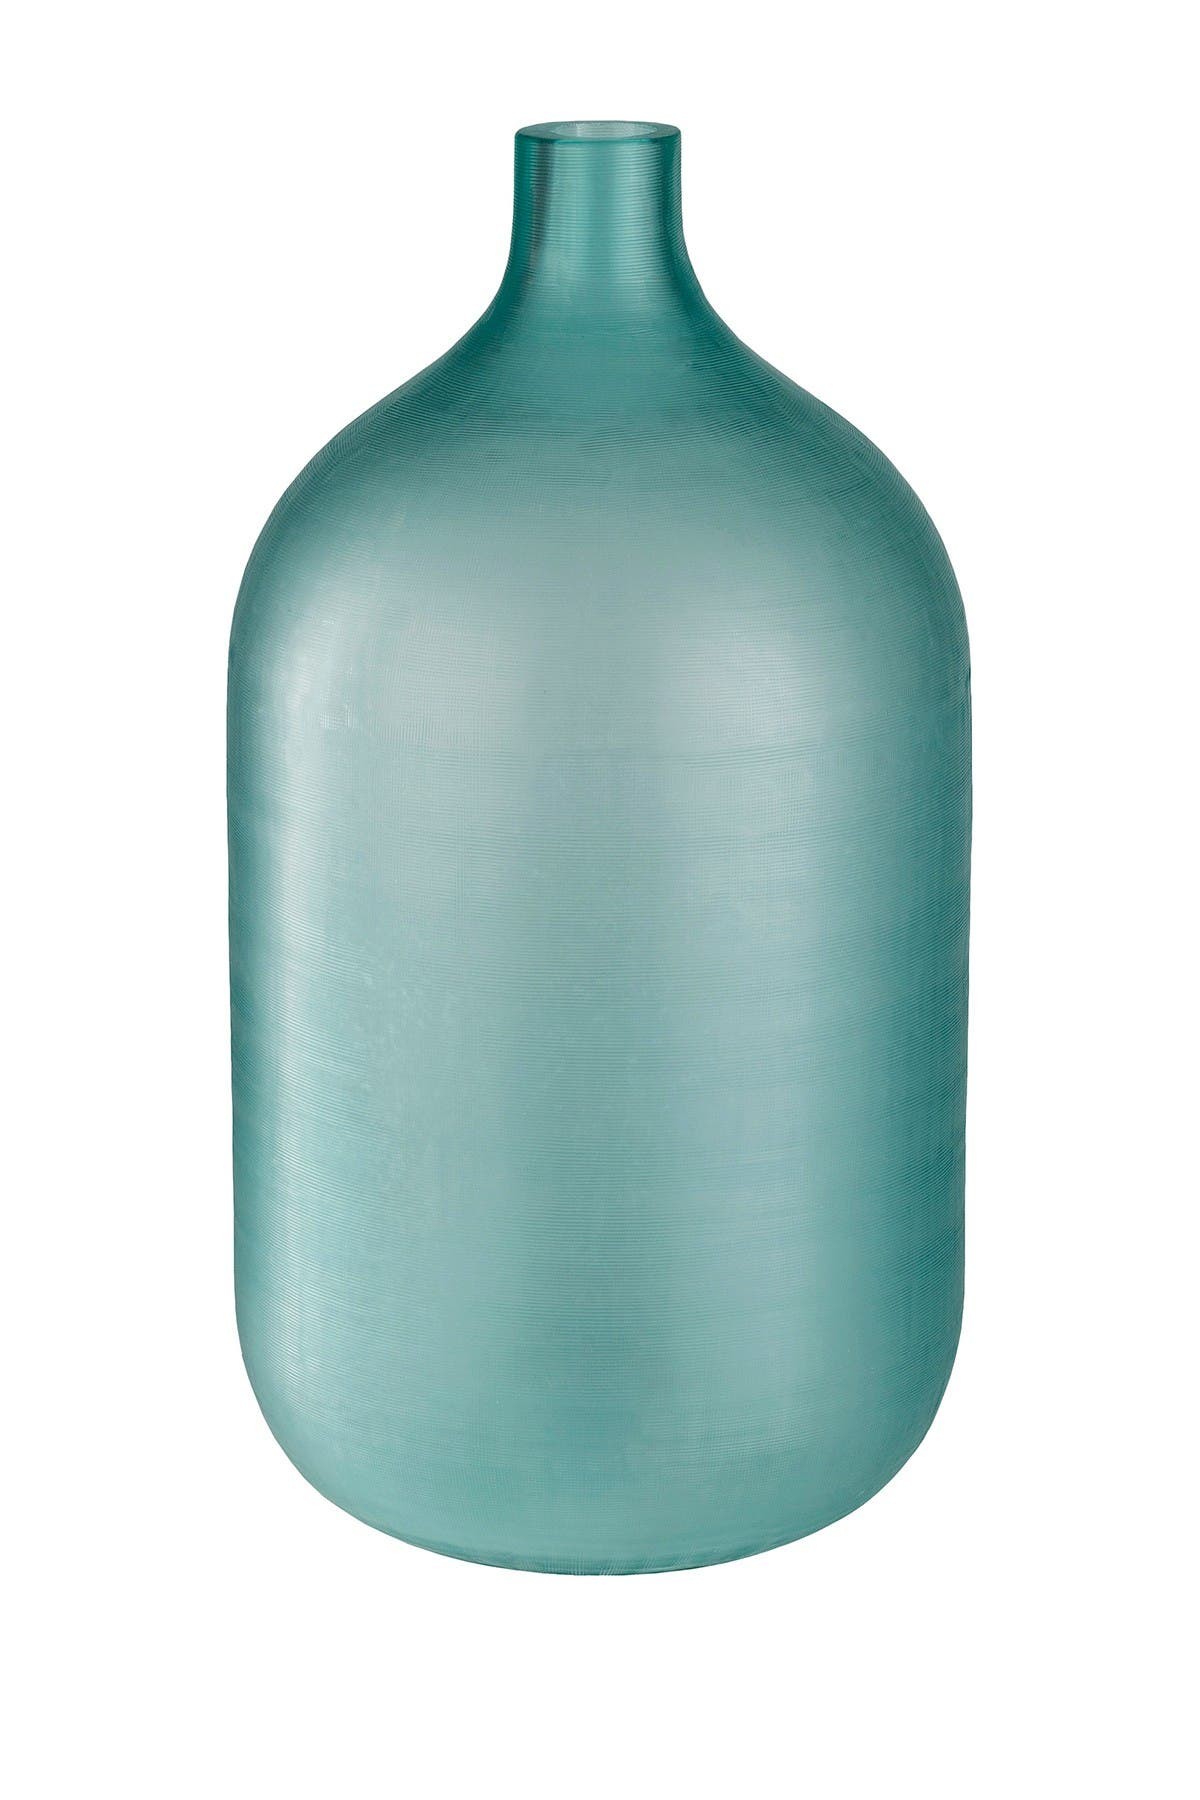 Image of SURYA HOME Modern Decorative Vase - Mint Seaglass